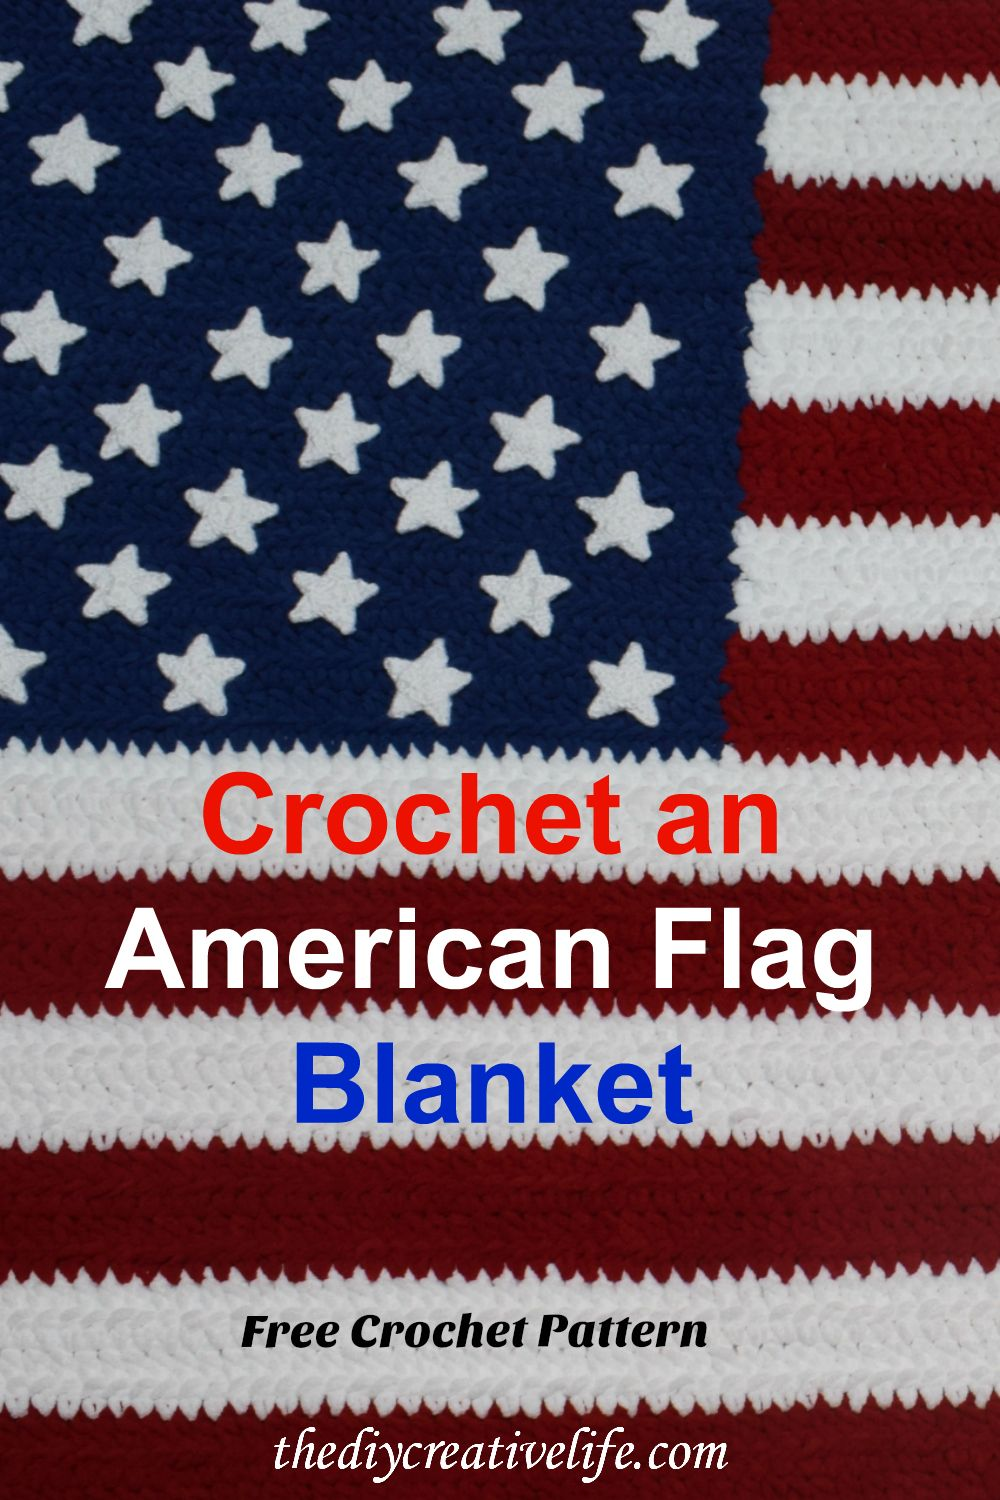 How To Crochet An American Flag Blanket Best Of The Diy Creative